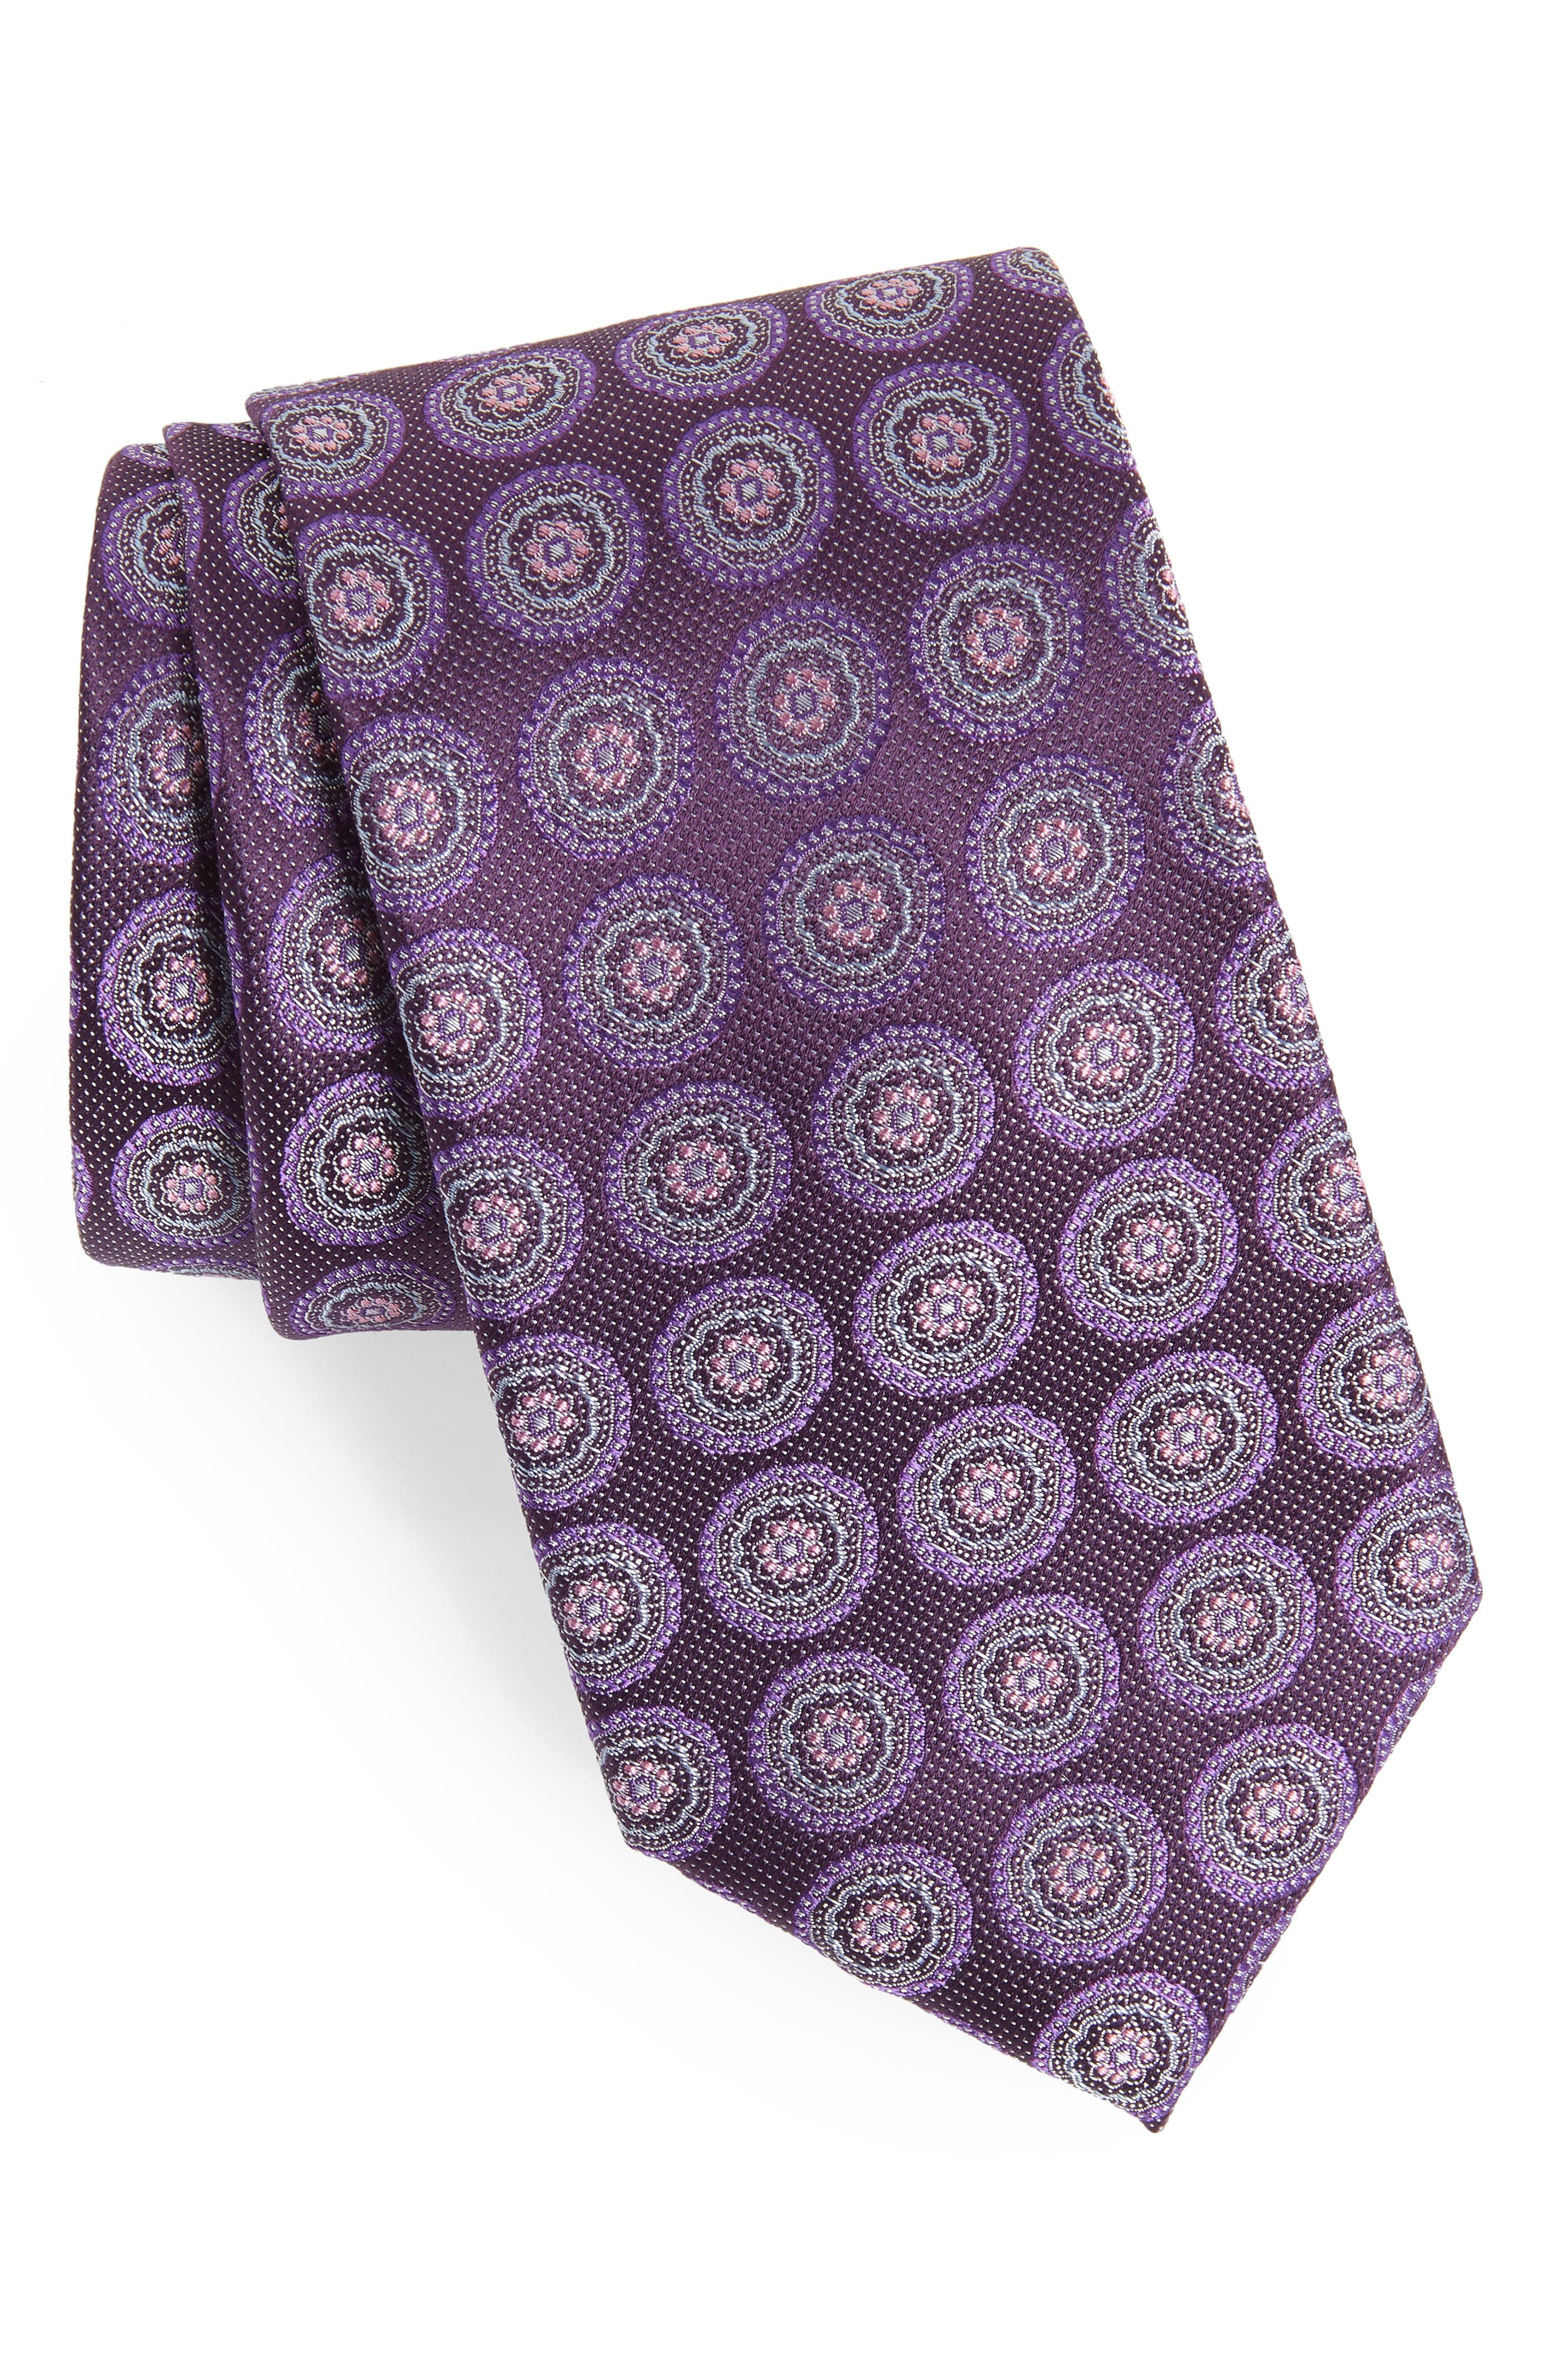 Pinpoint Medallion Silk Tie,                         Main,                         color, Dark Fashion Purple